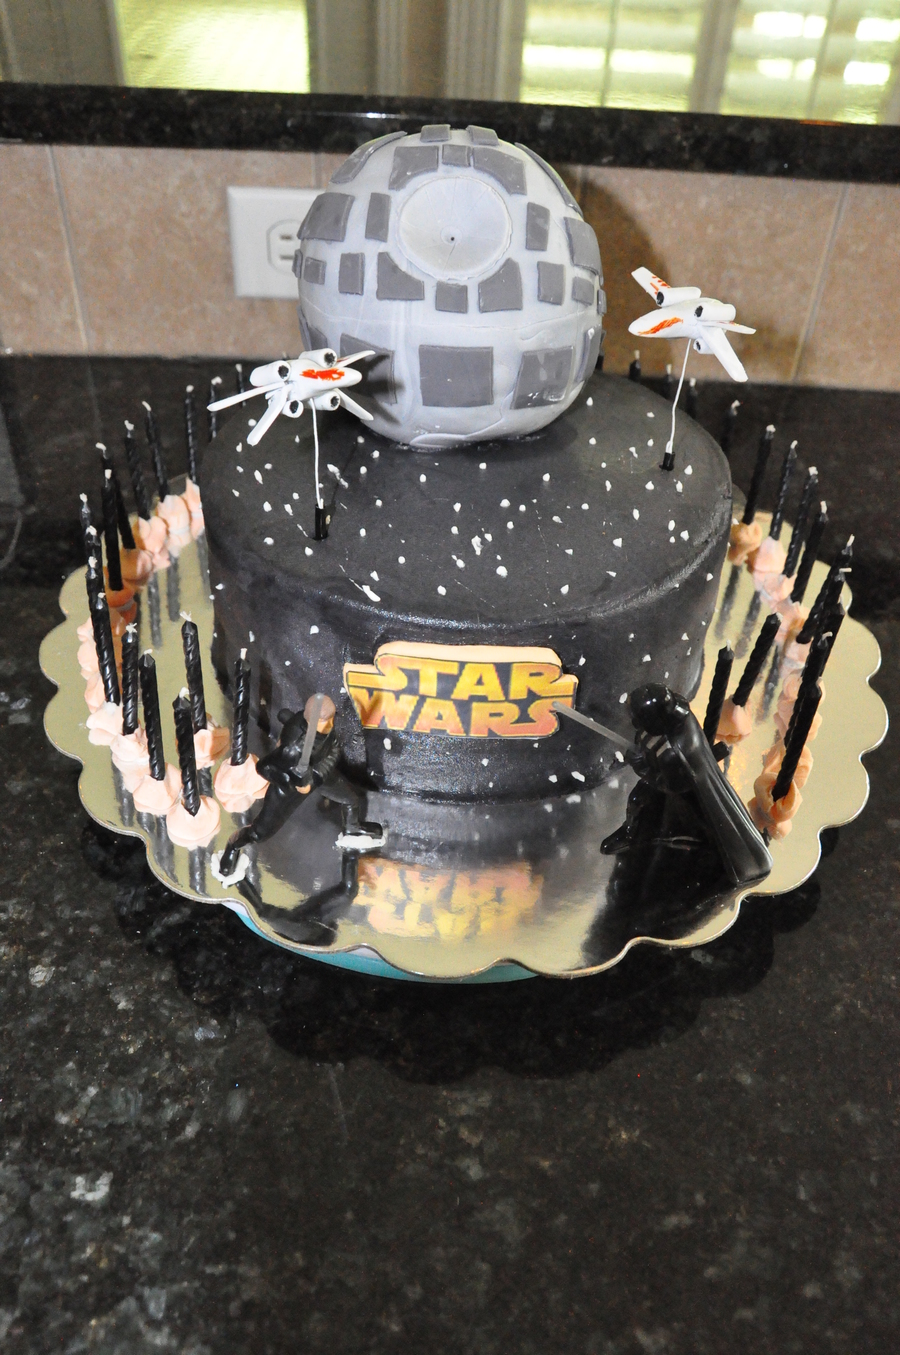 Star Wars Cake For 41st Birthday Cakecentral Com